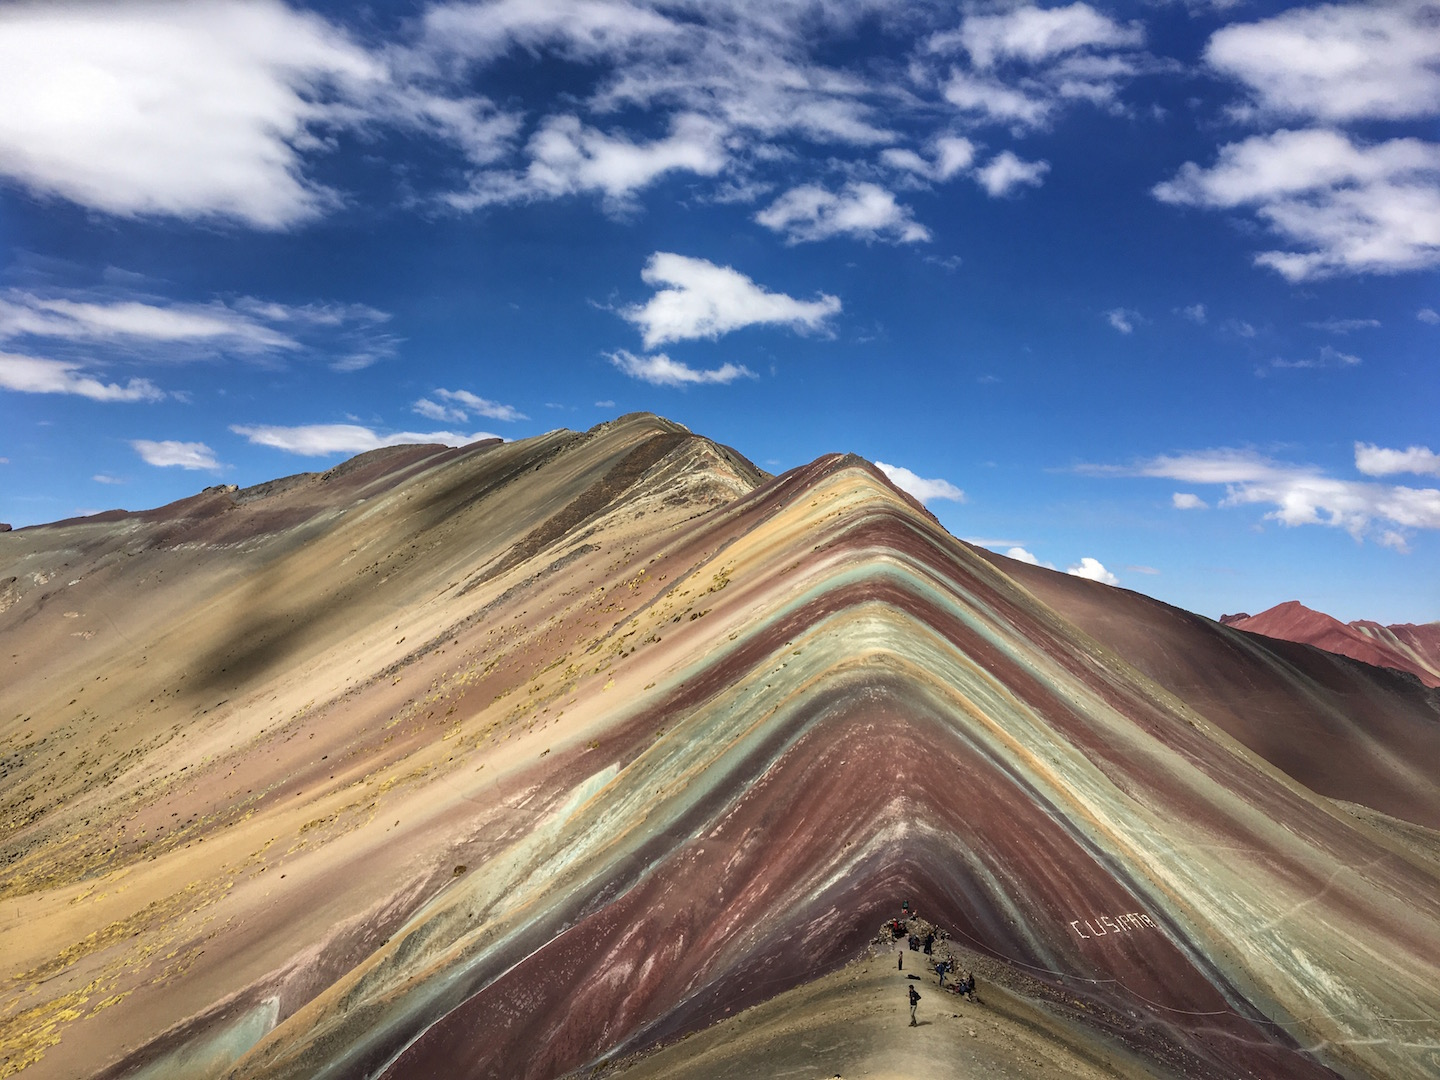 Hiking the Rainbow Mountains of Peru